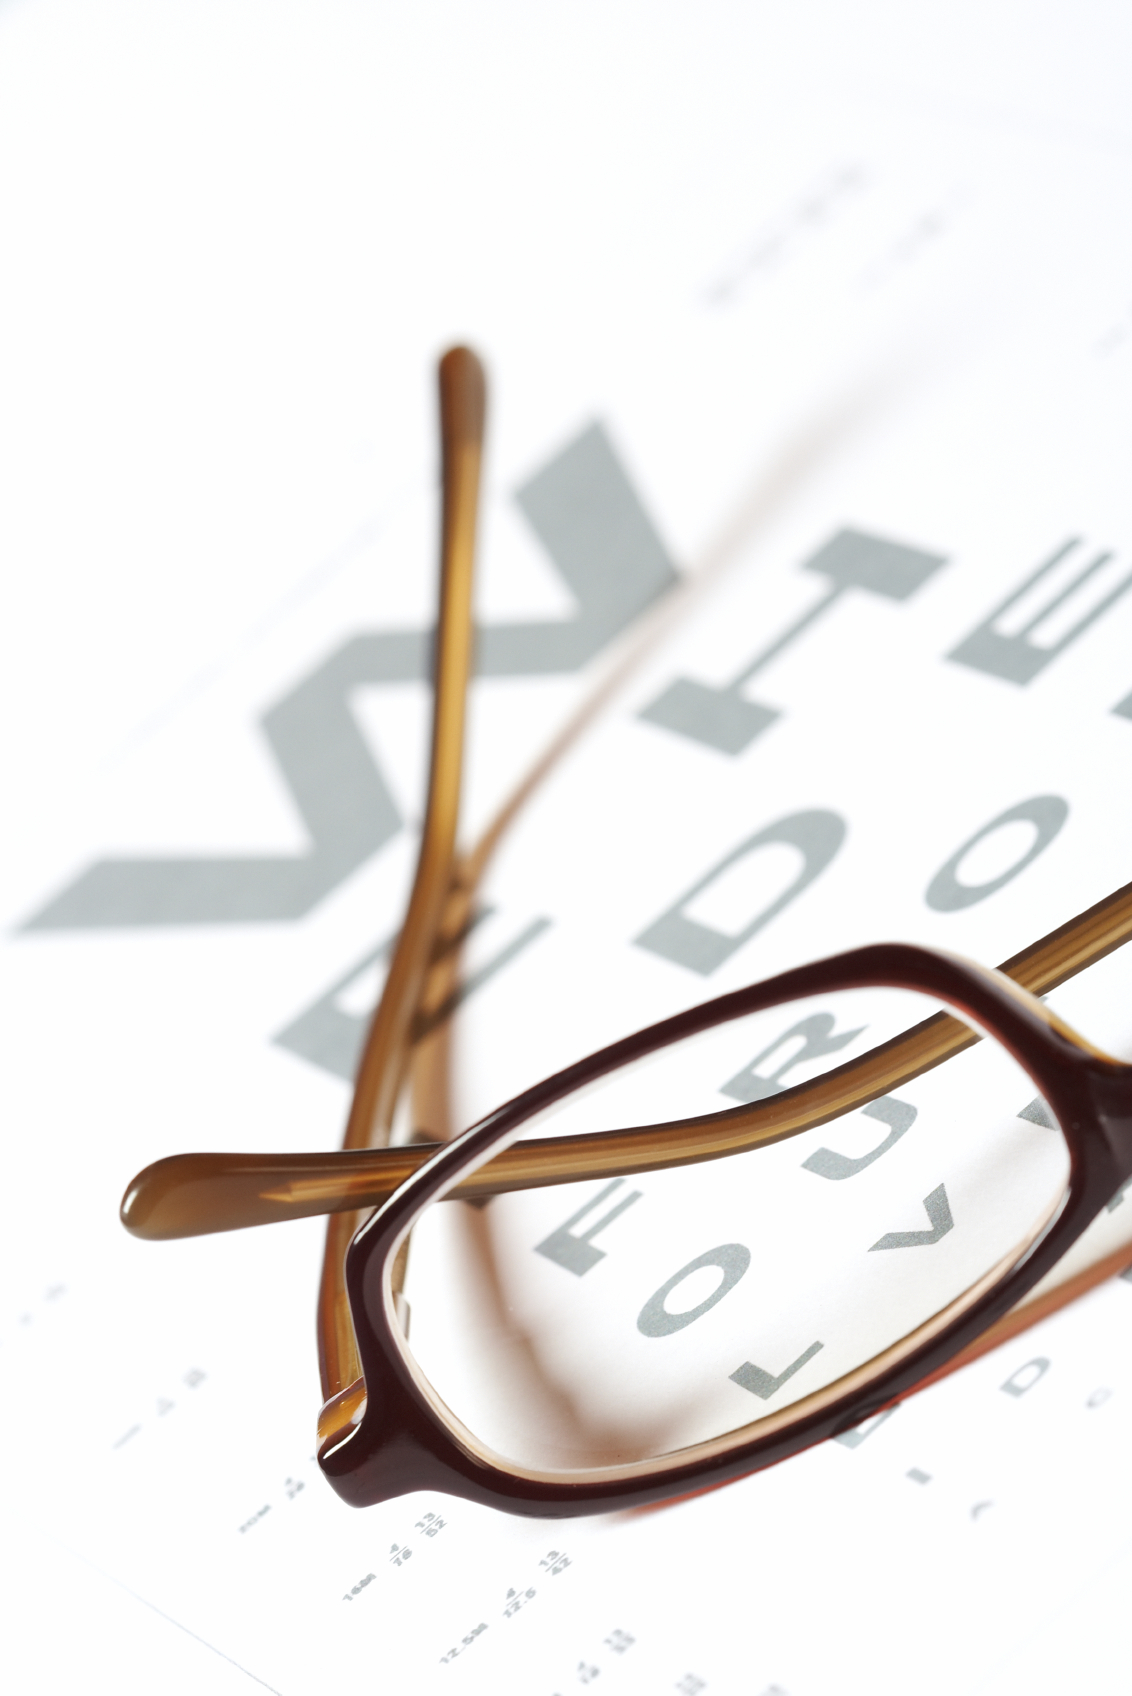 7-Solutions-to-Fulfill-Your-Eyecare-Practice's-New-Year-Resolution